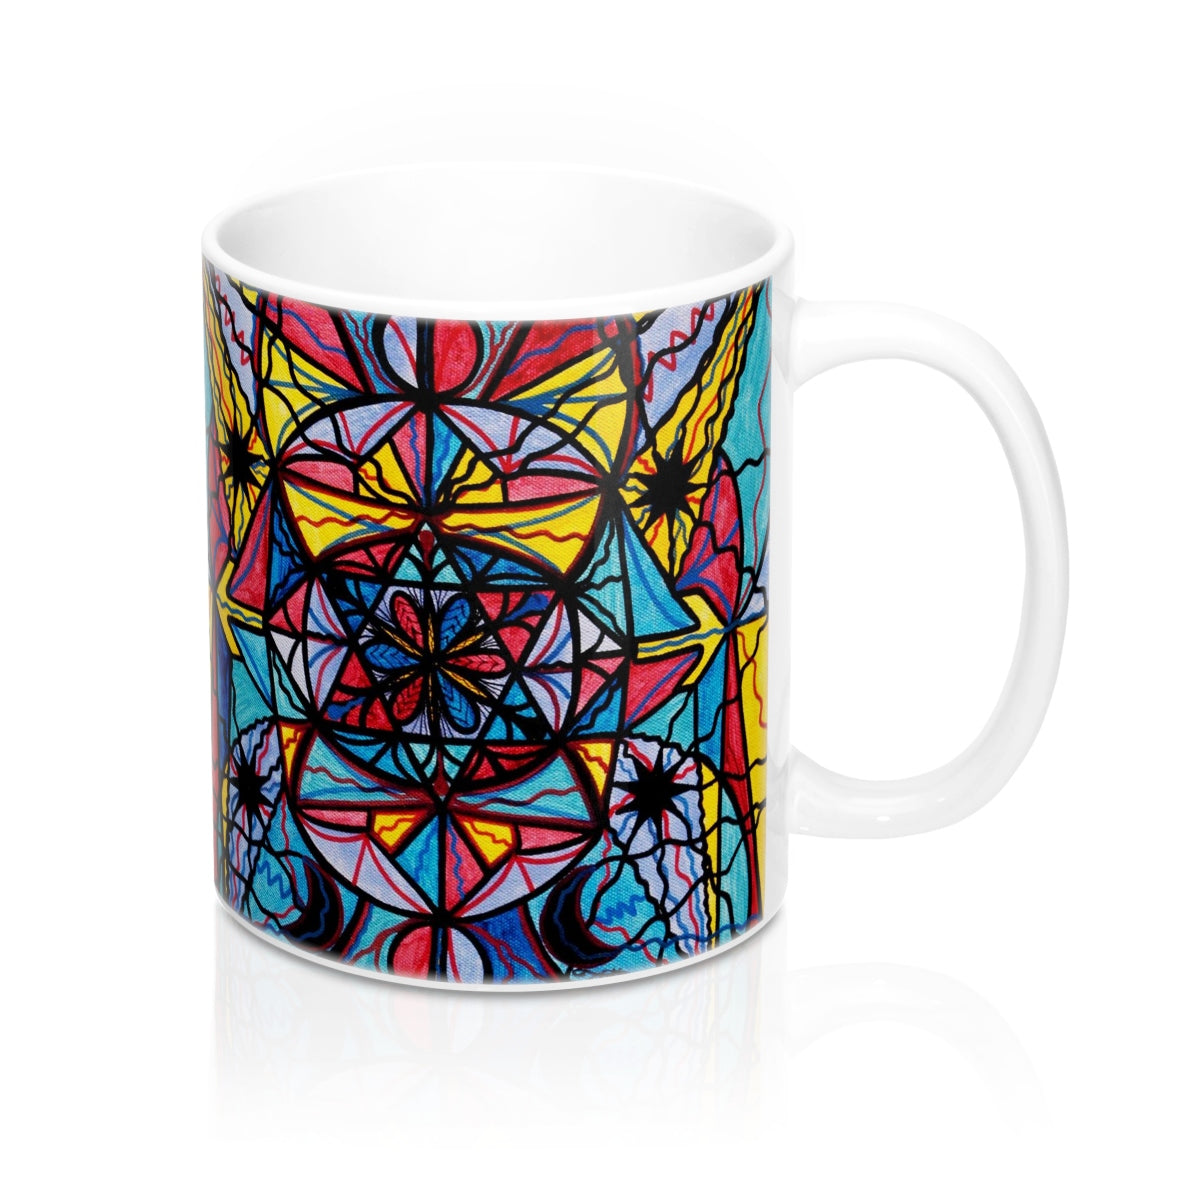 Open To The Joy Of Being Here - Mug